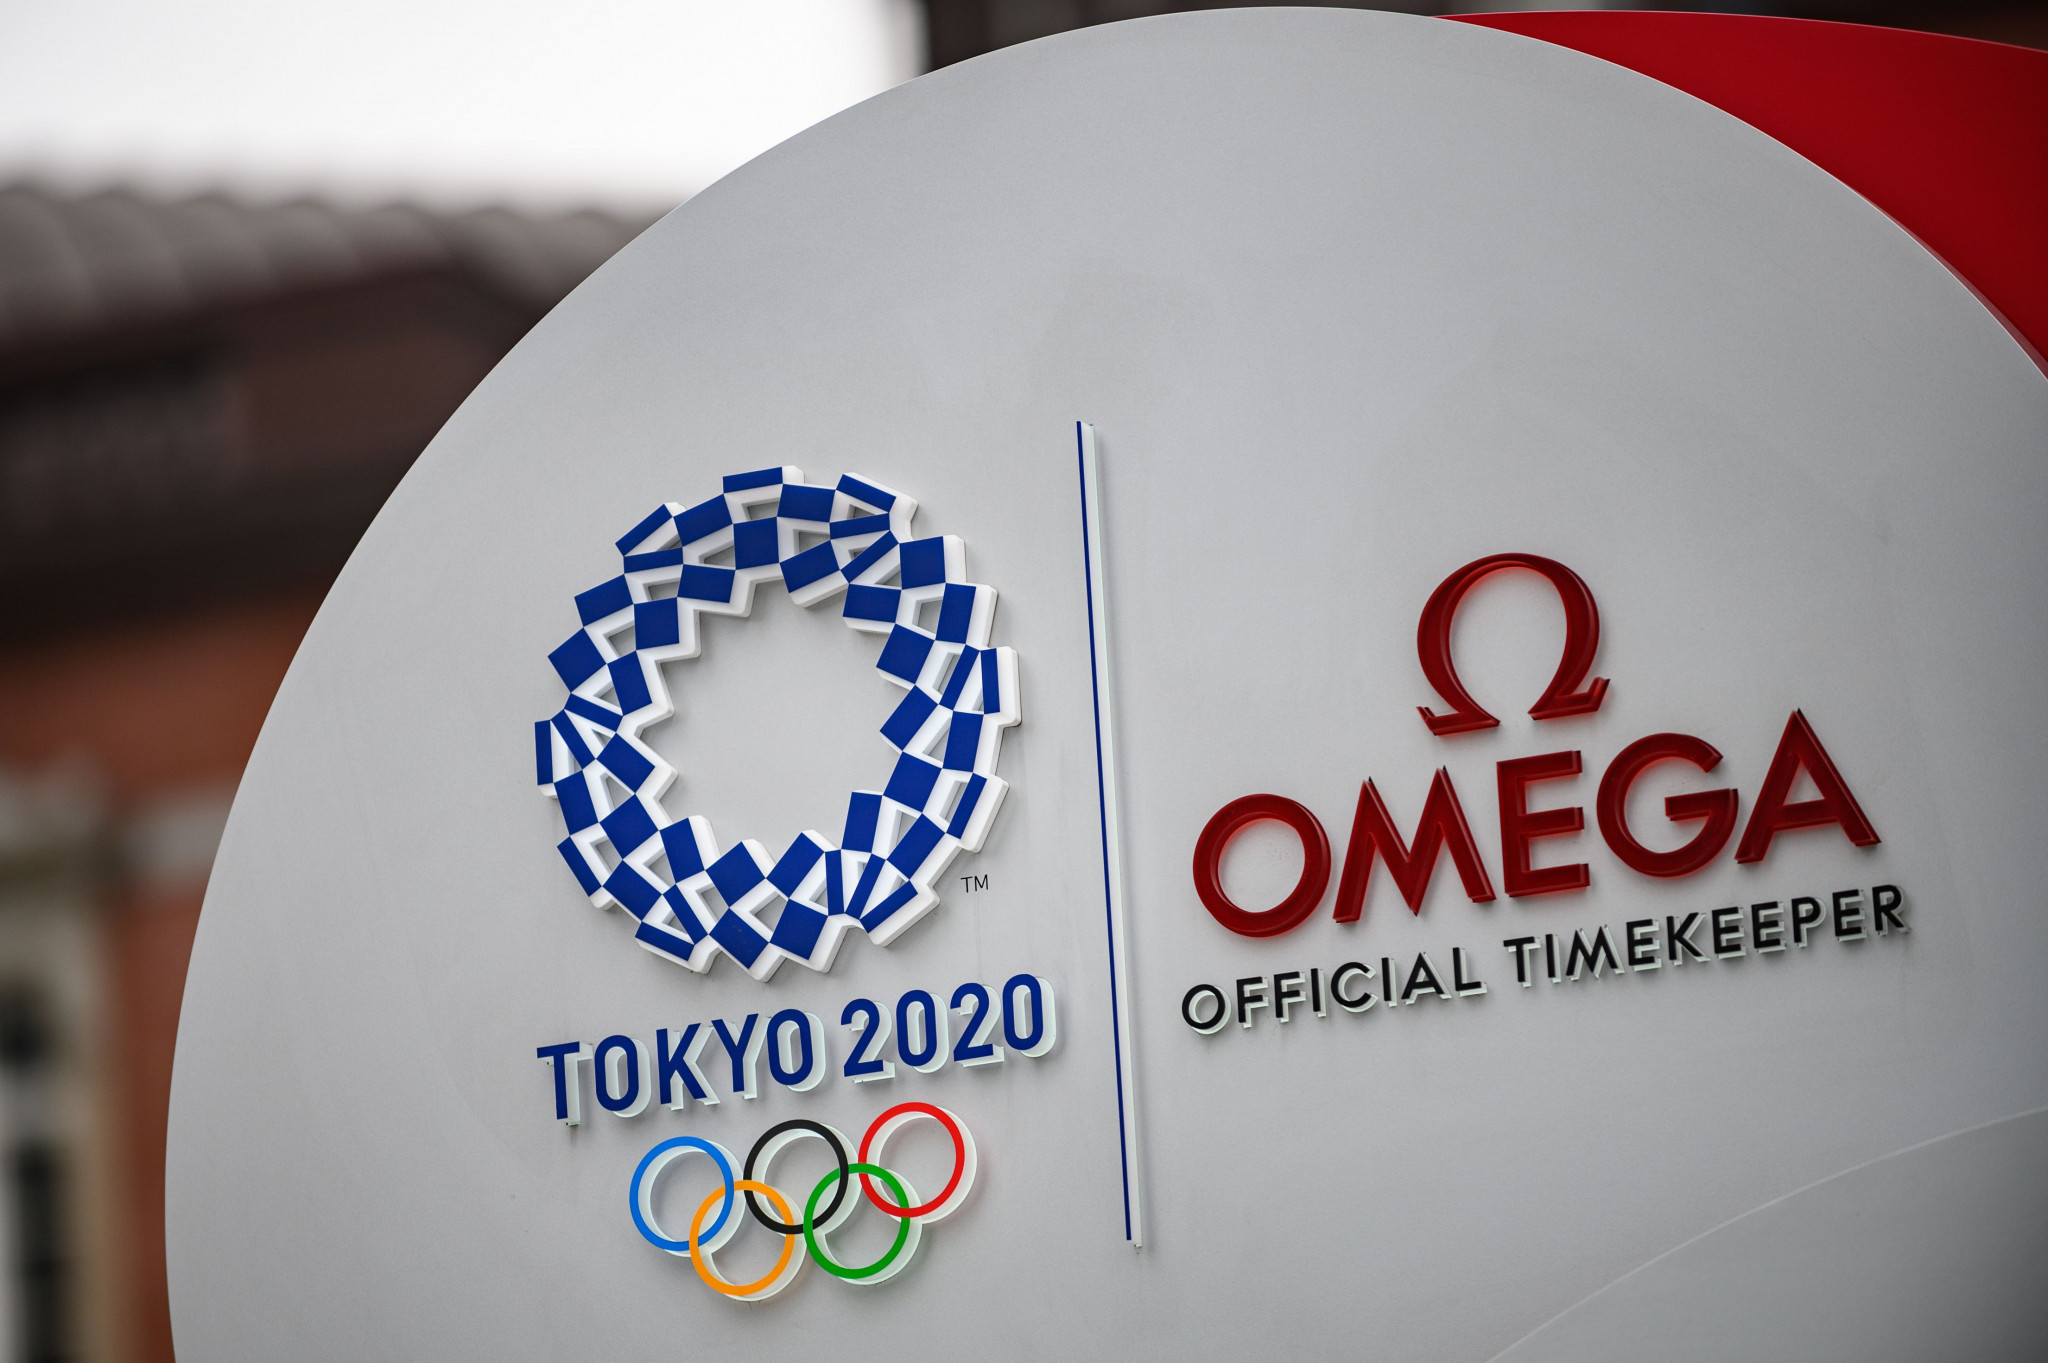 The Tokyo 2020 Olympic Games will open on July 23 in 2021 ©Getty Images